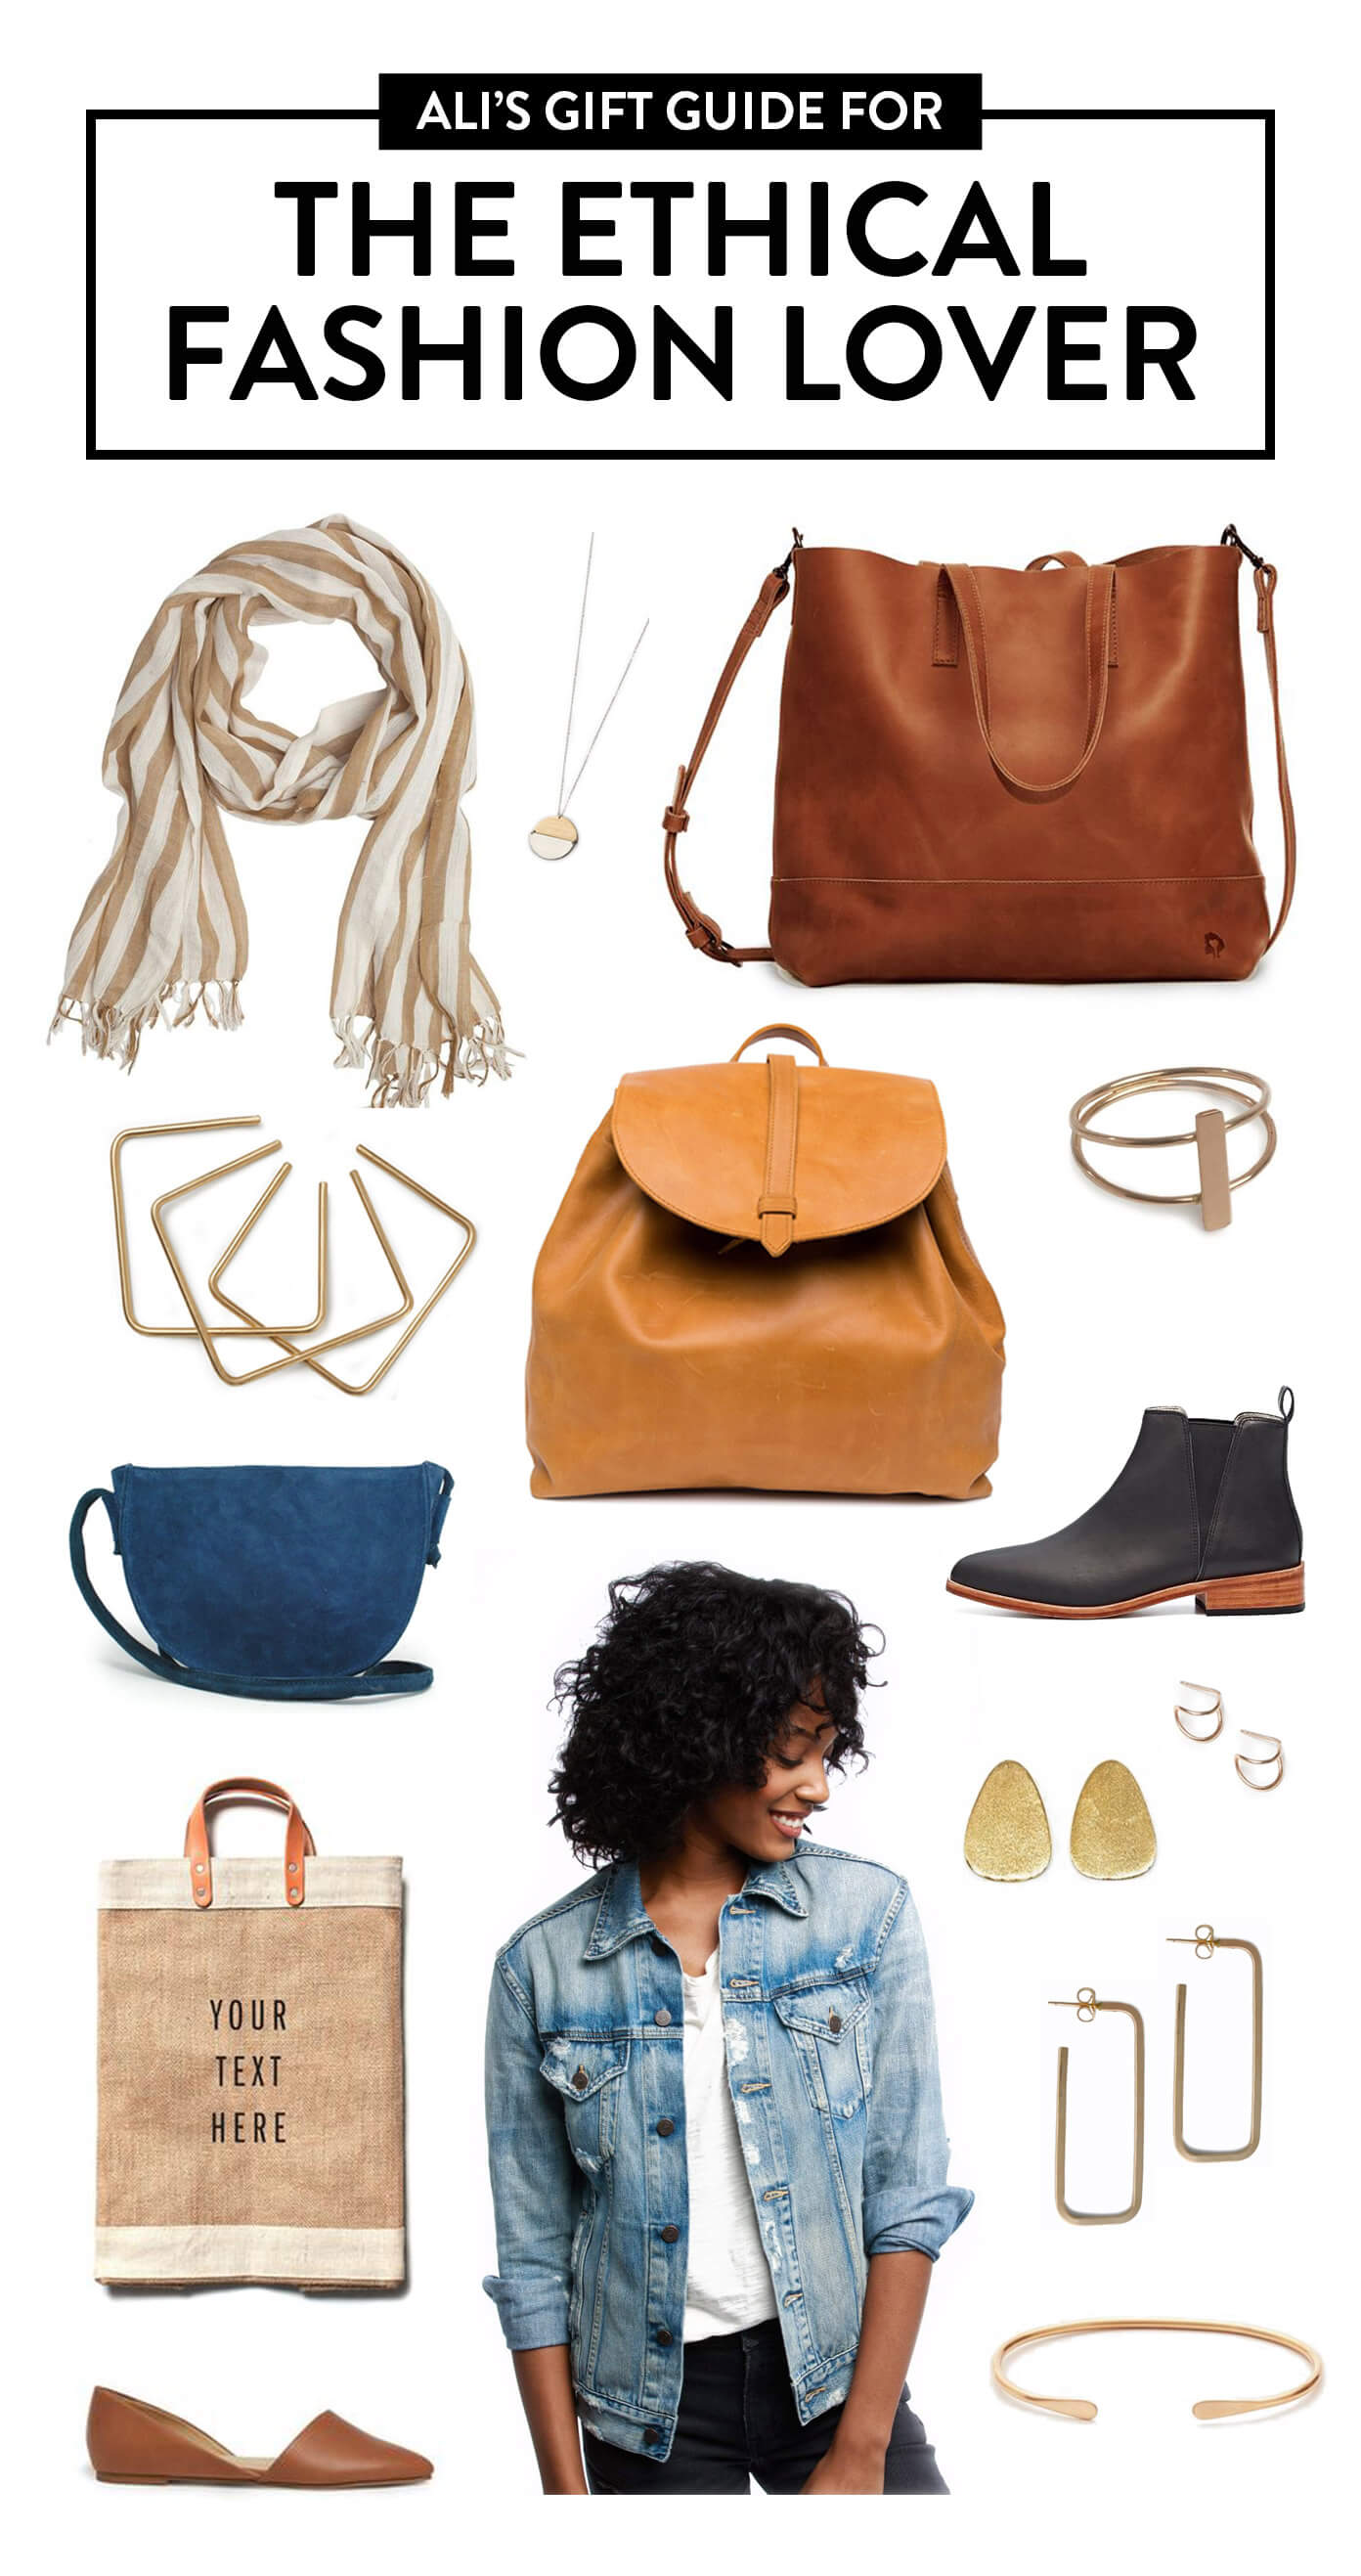 2018 Gimme Some Oven Gift Guide: The Ethical Fashion Lover